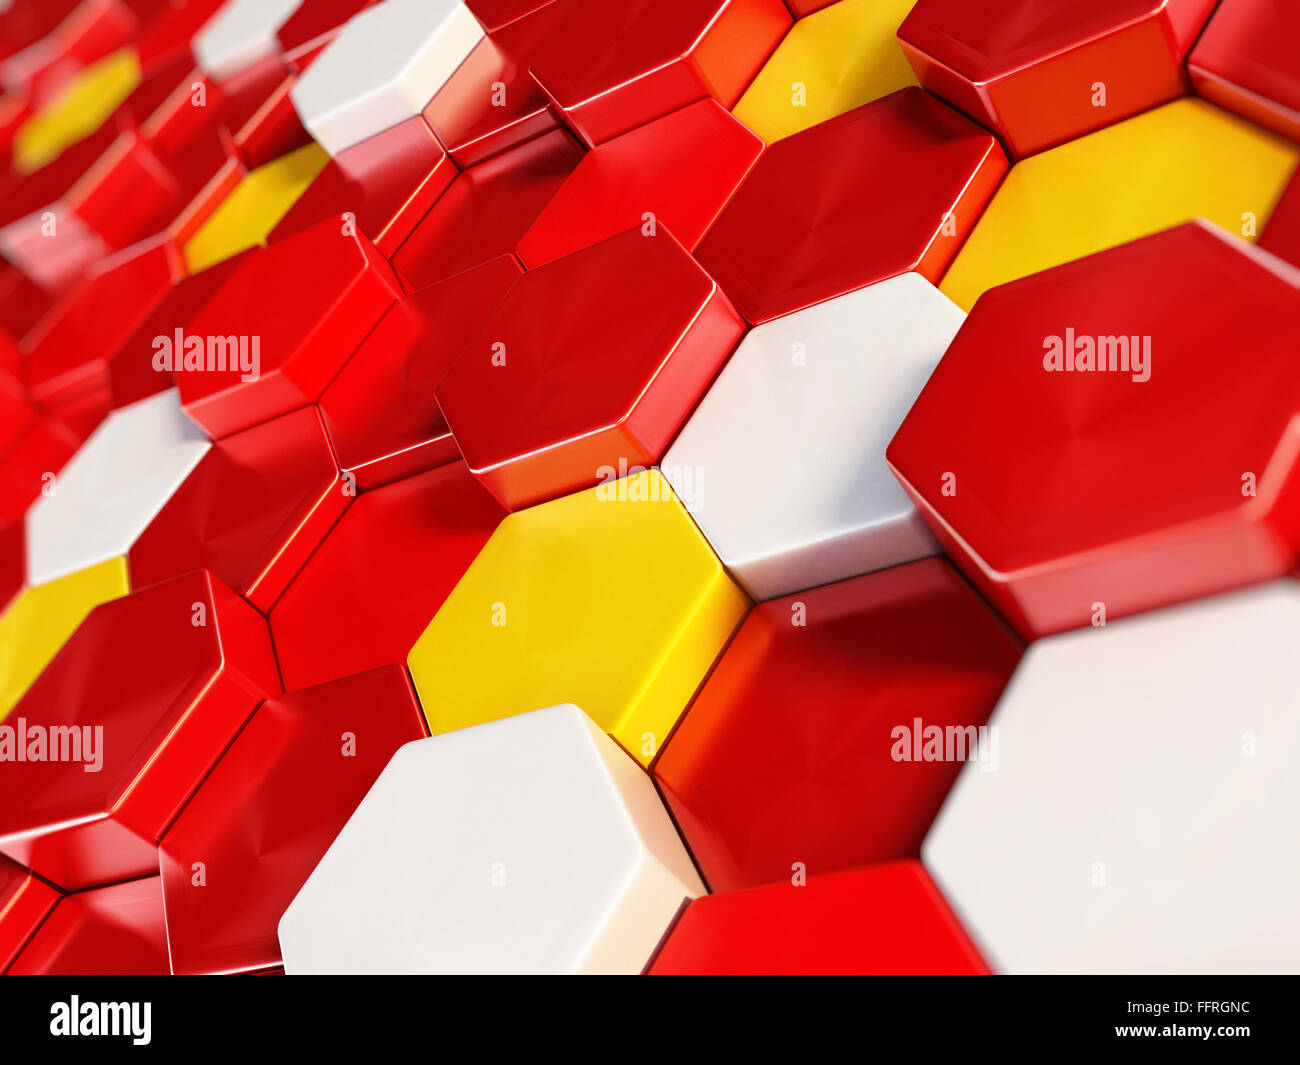 Abstract hexagonal background formed with white, yellow and red hexagon shapes. - Stock Image